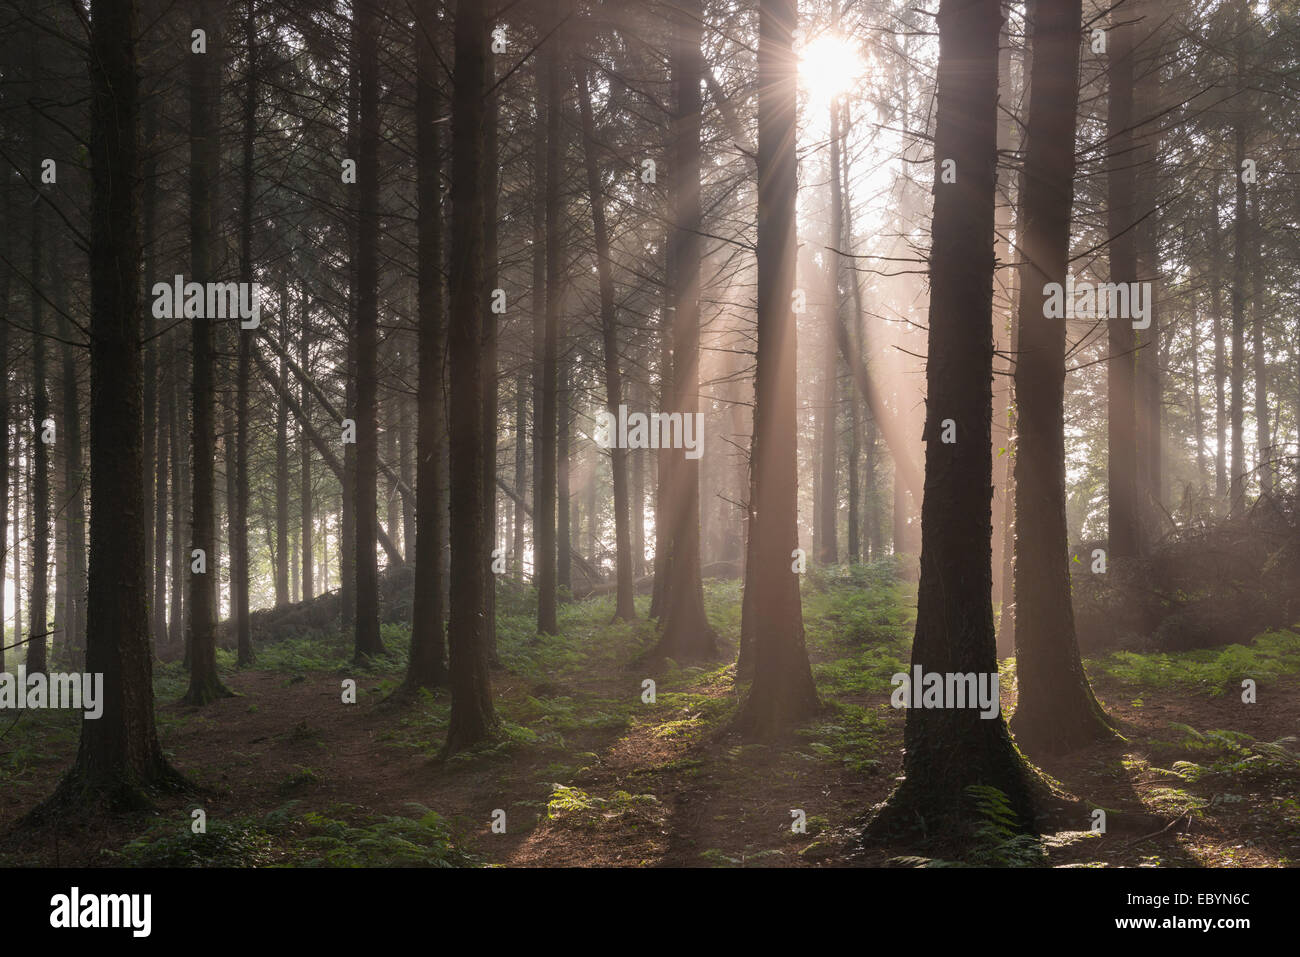 Sun shining through misty pine woodland, Morchard Bishop, Devon, England. September (Autumn) 2014. - Stock Image